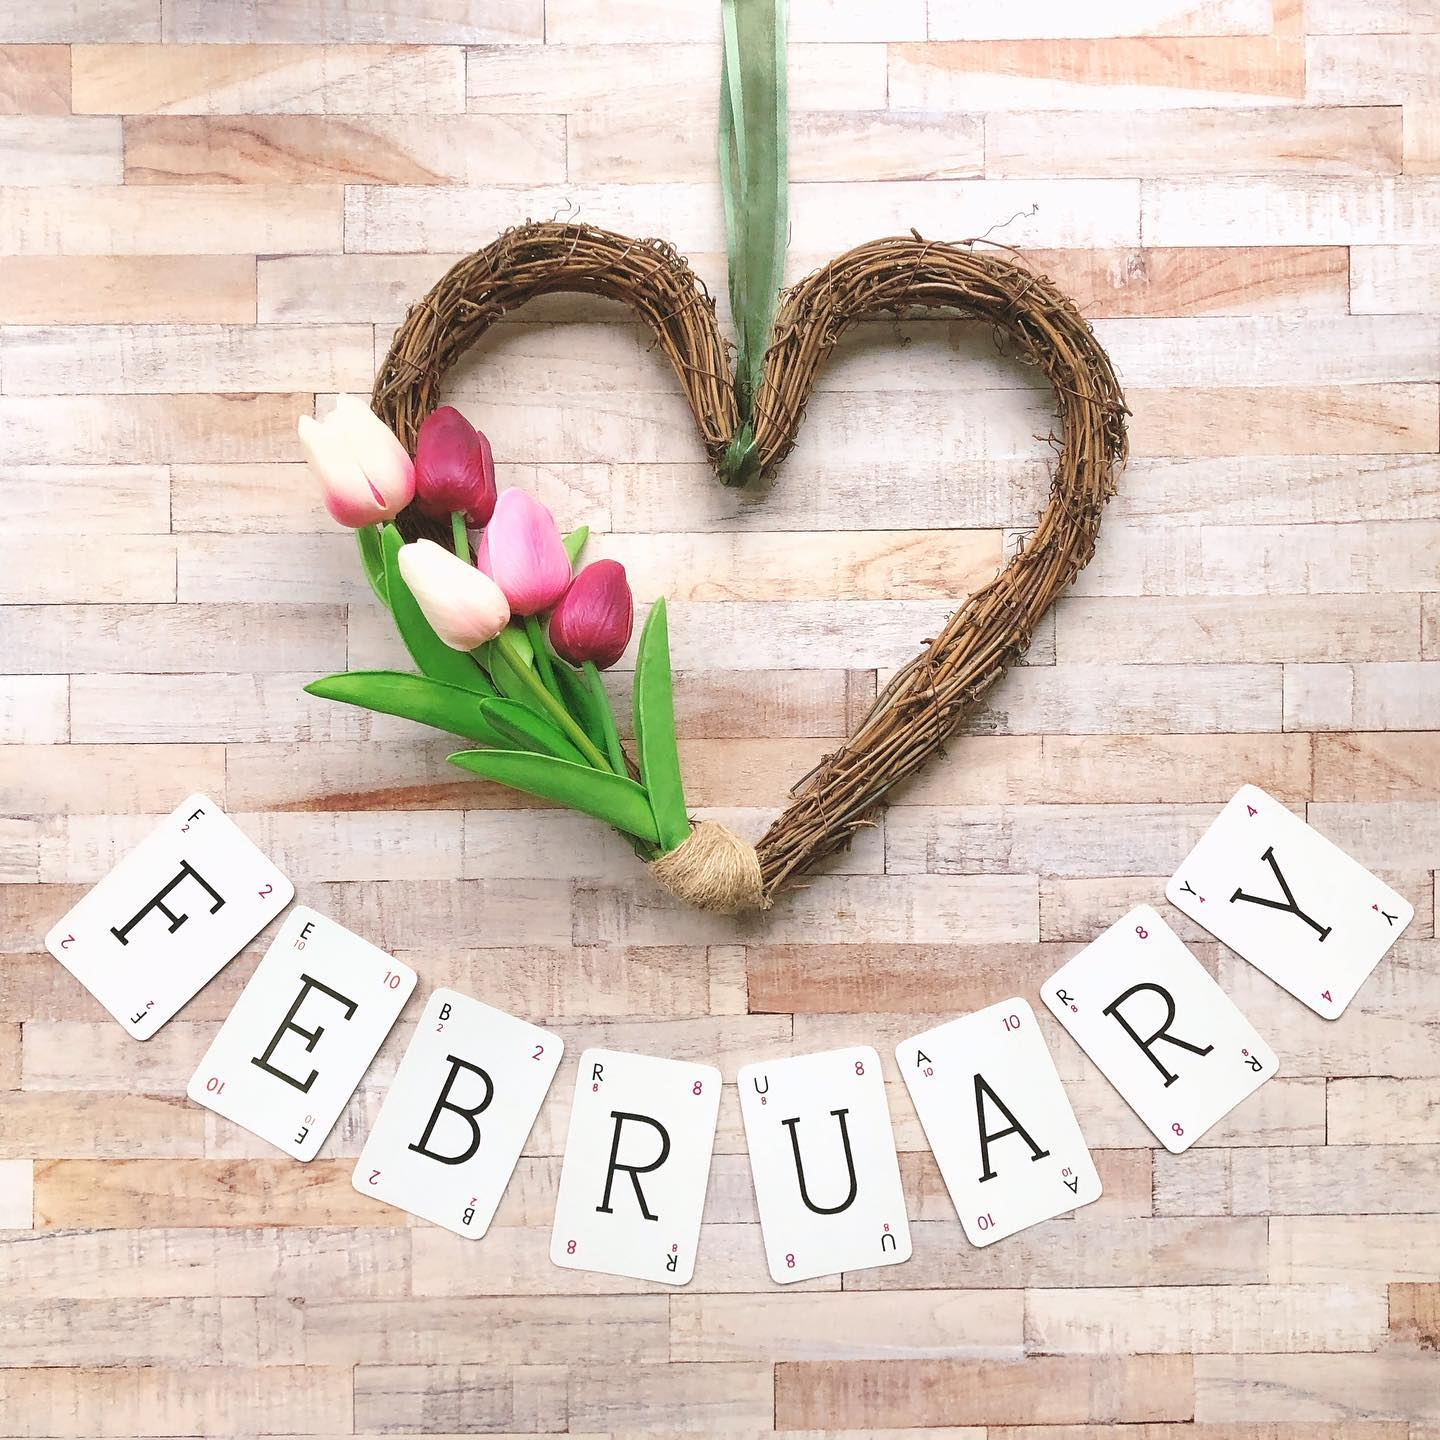 Hello February! I created this new heart wreath for our from door for February